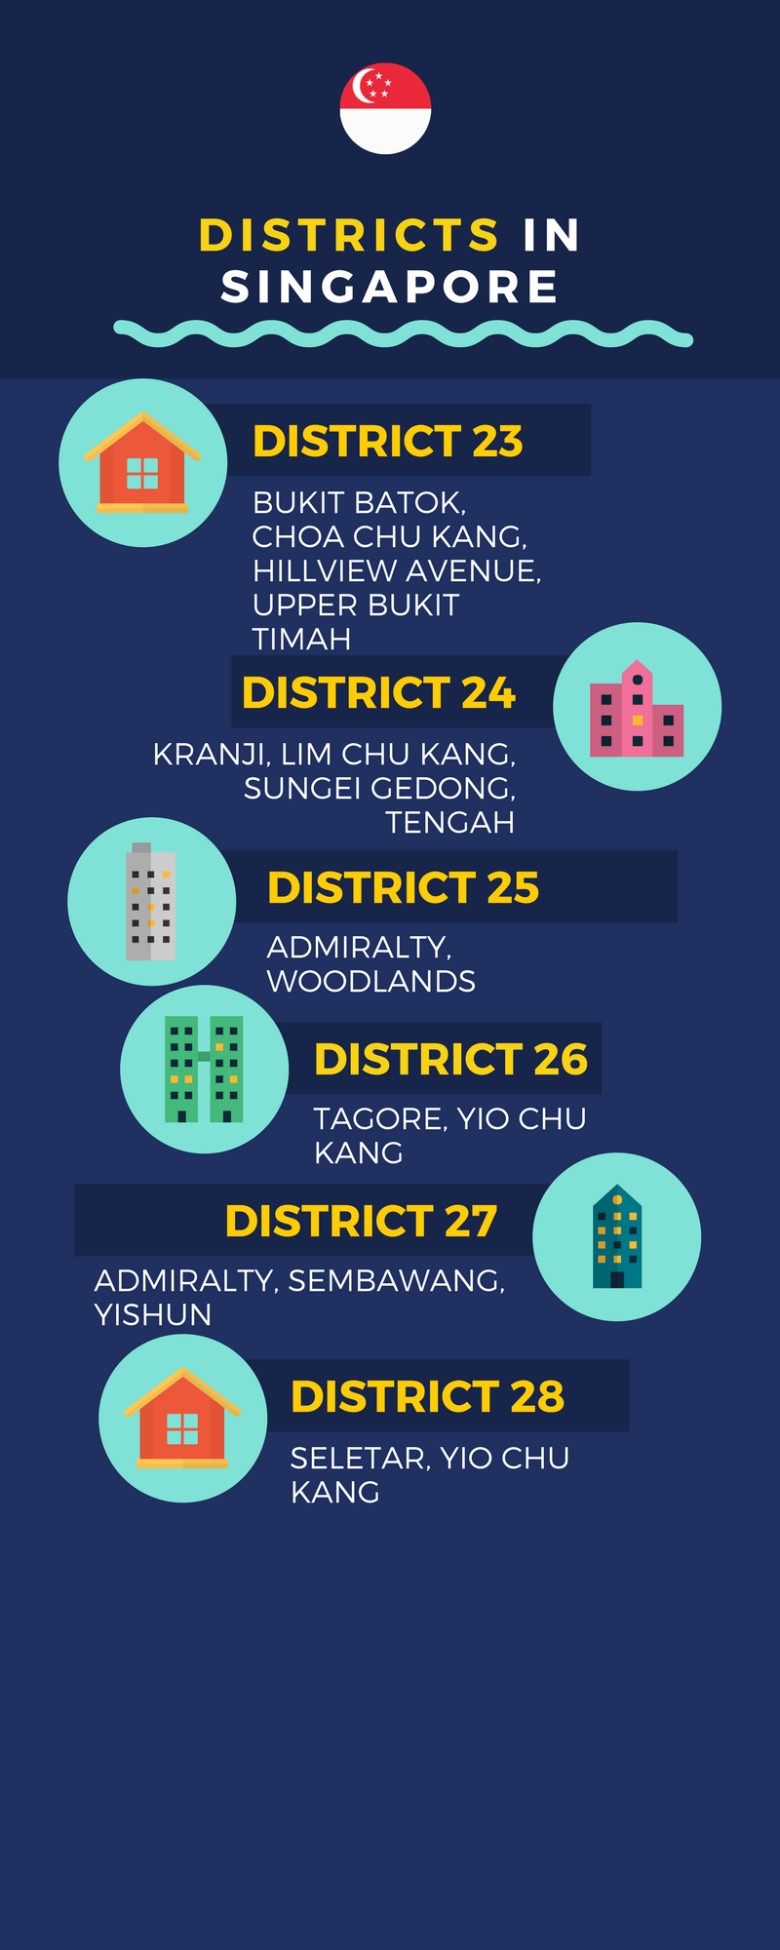 renting in singapore guide districts